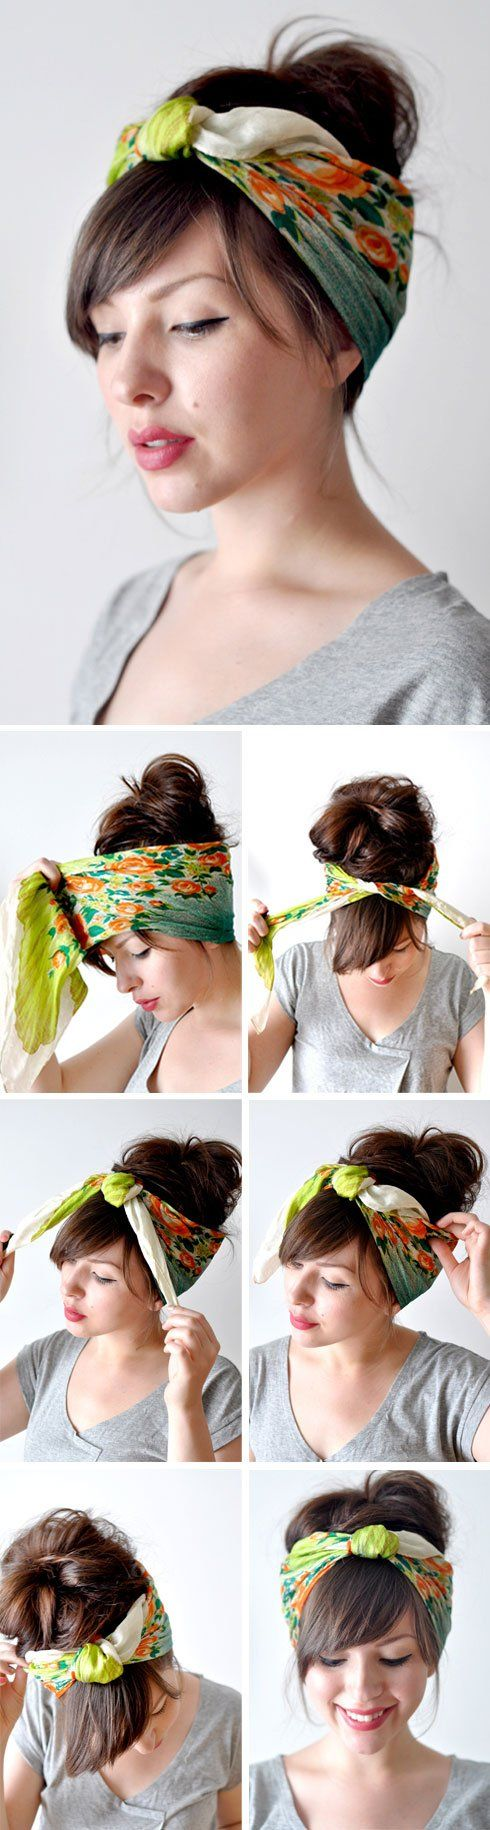 May need this for those bad hair days...